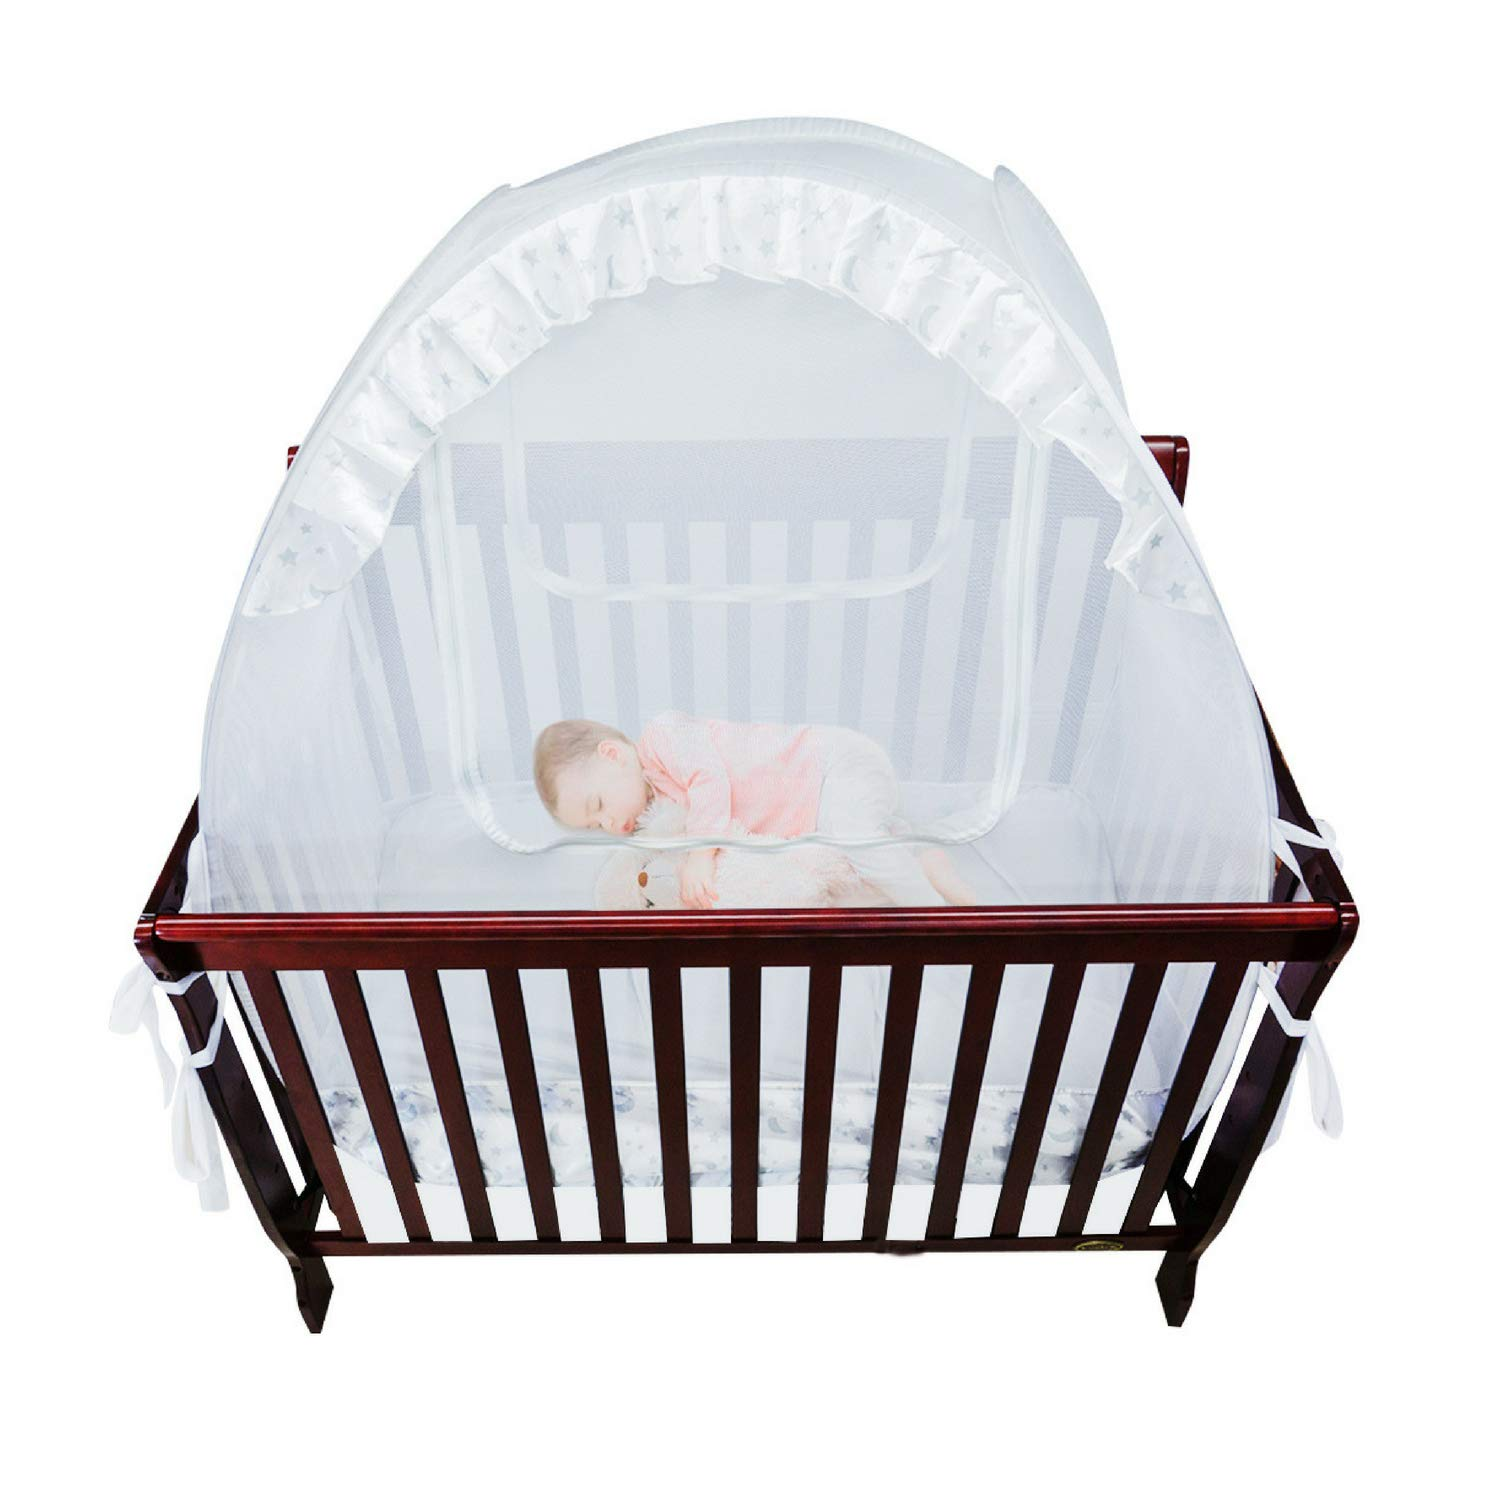 Houseables Baby Crib Safety Net, Mosquito Bed Netting Tent for Babies, White, 48'' X 26'' X 57'', Mesh, Toddler Pack N Play Canopy, Pop up Protection for Infants, Sleeping Beds, Insect Bumper Cover